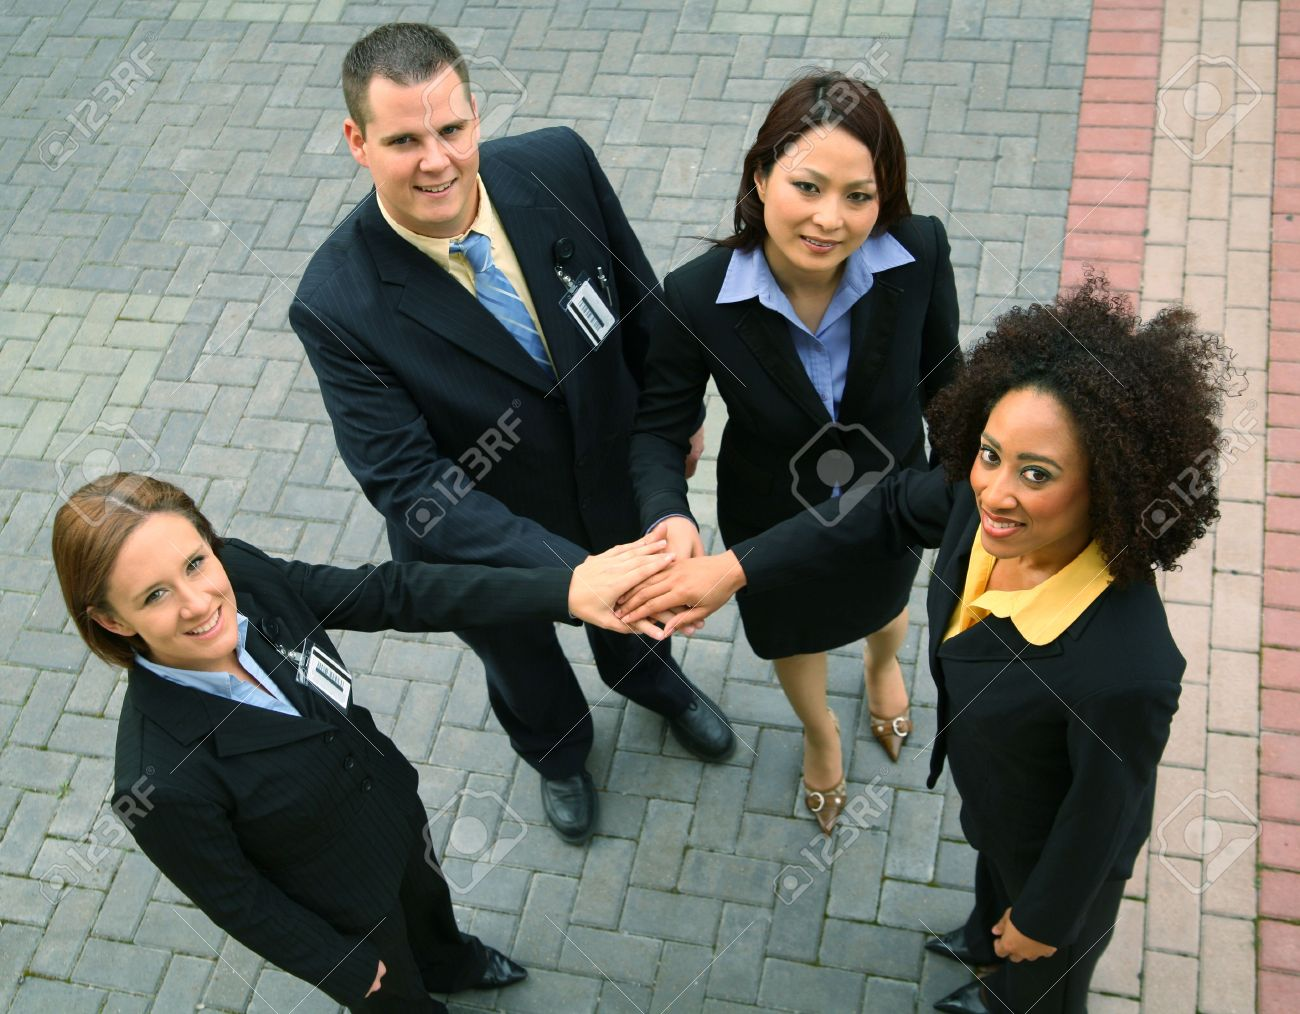 6299670-group-of-diversity-business-peop